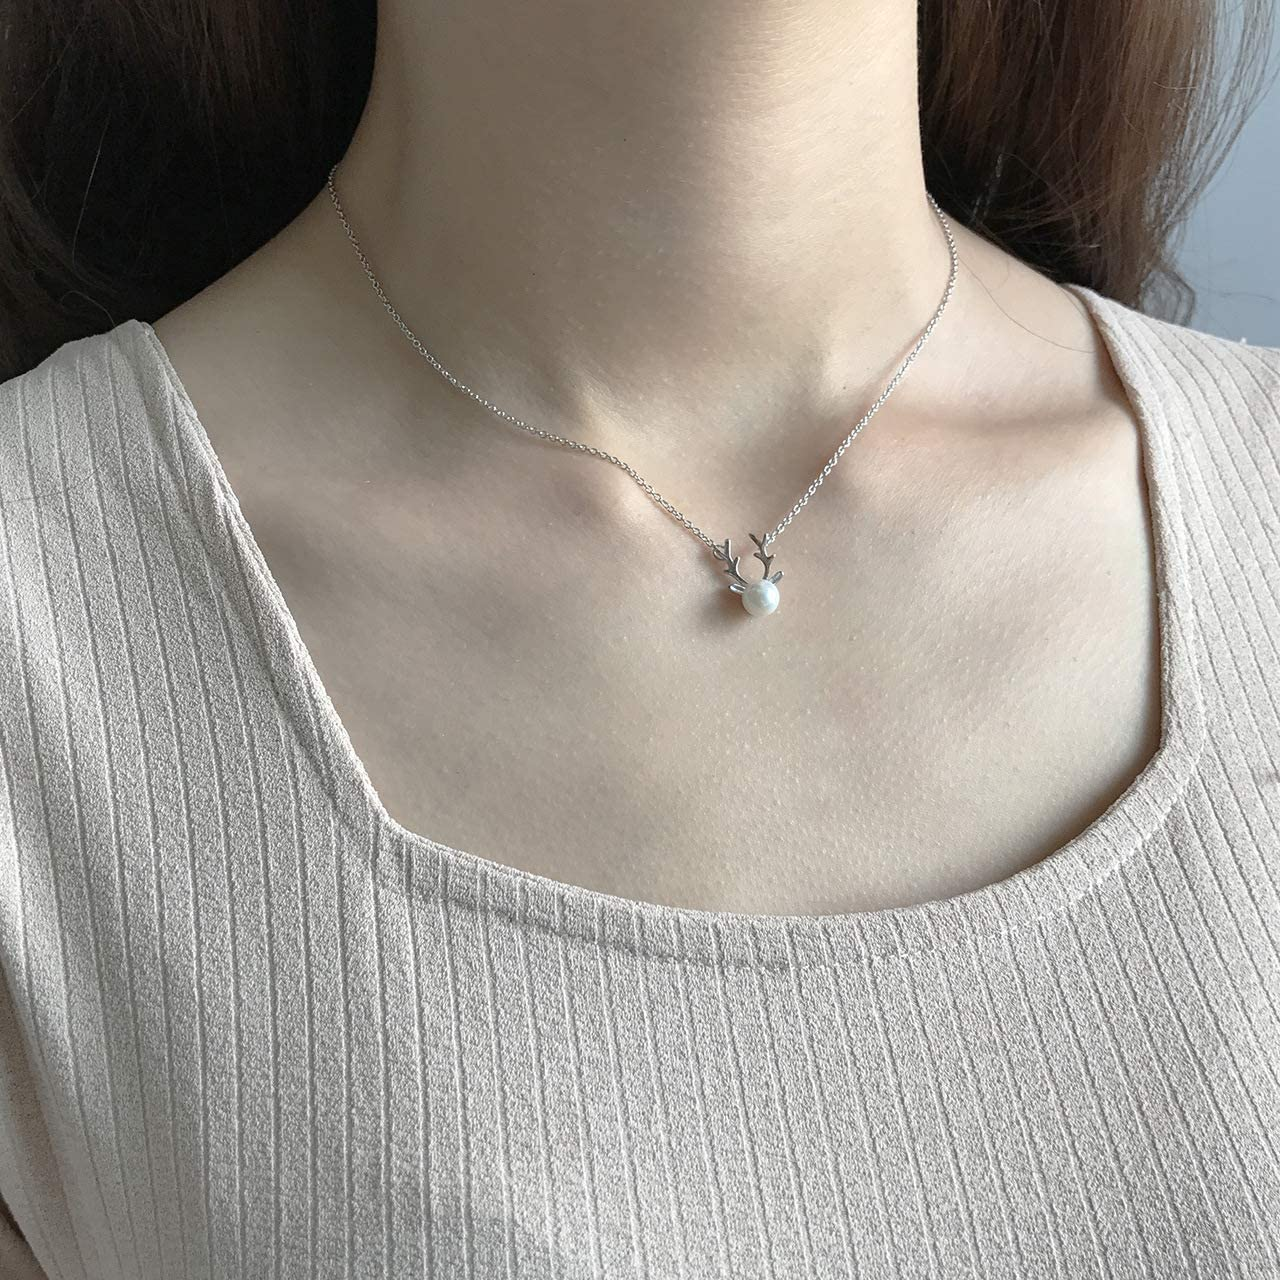 New Jewelry 925 Sterling Silver Pearl Necklace Personalized Necklace